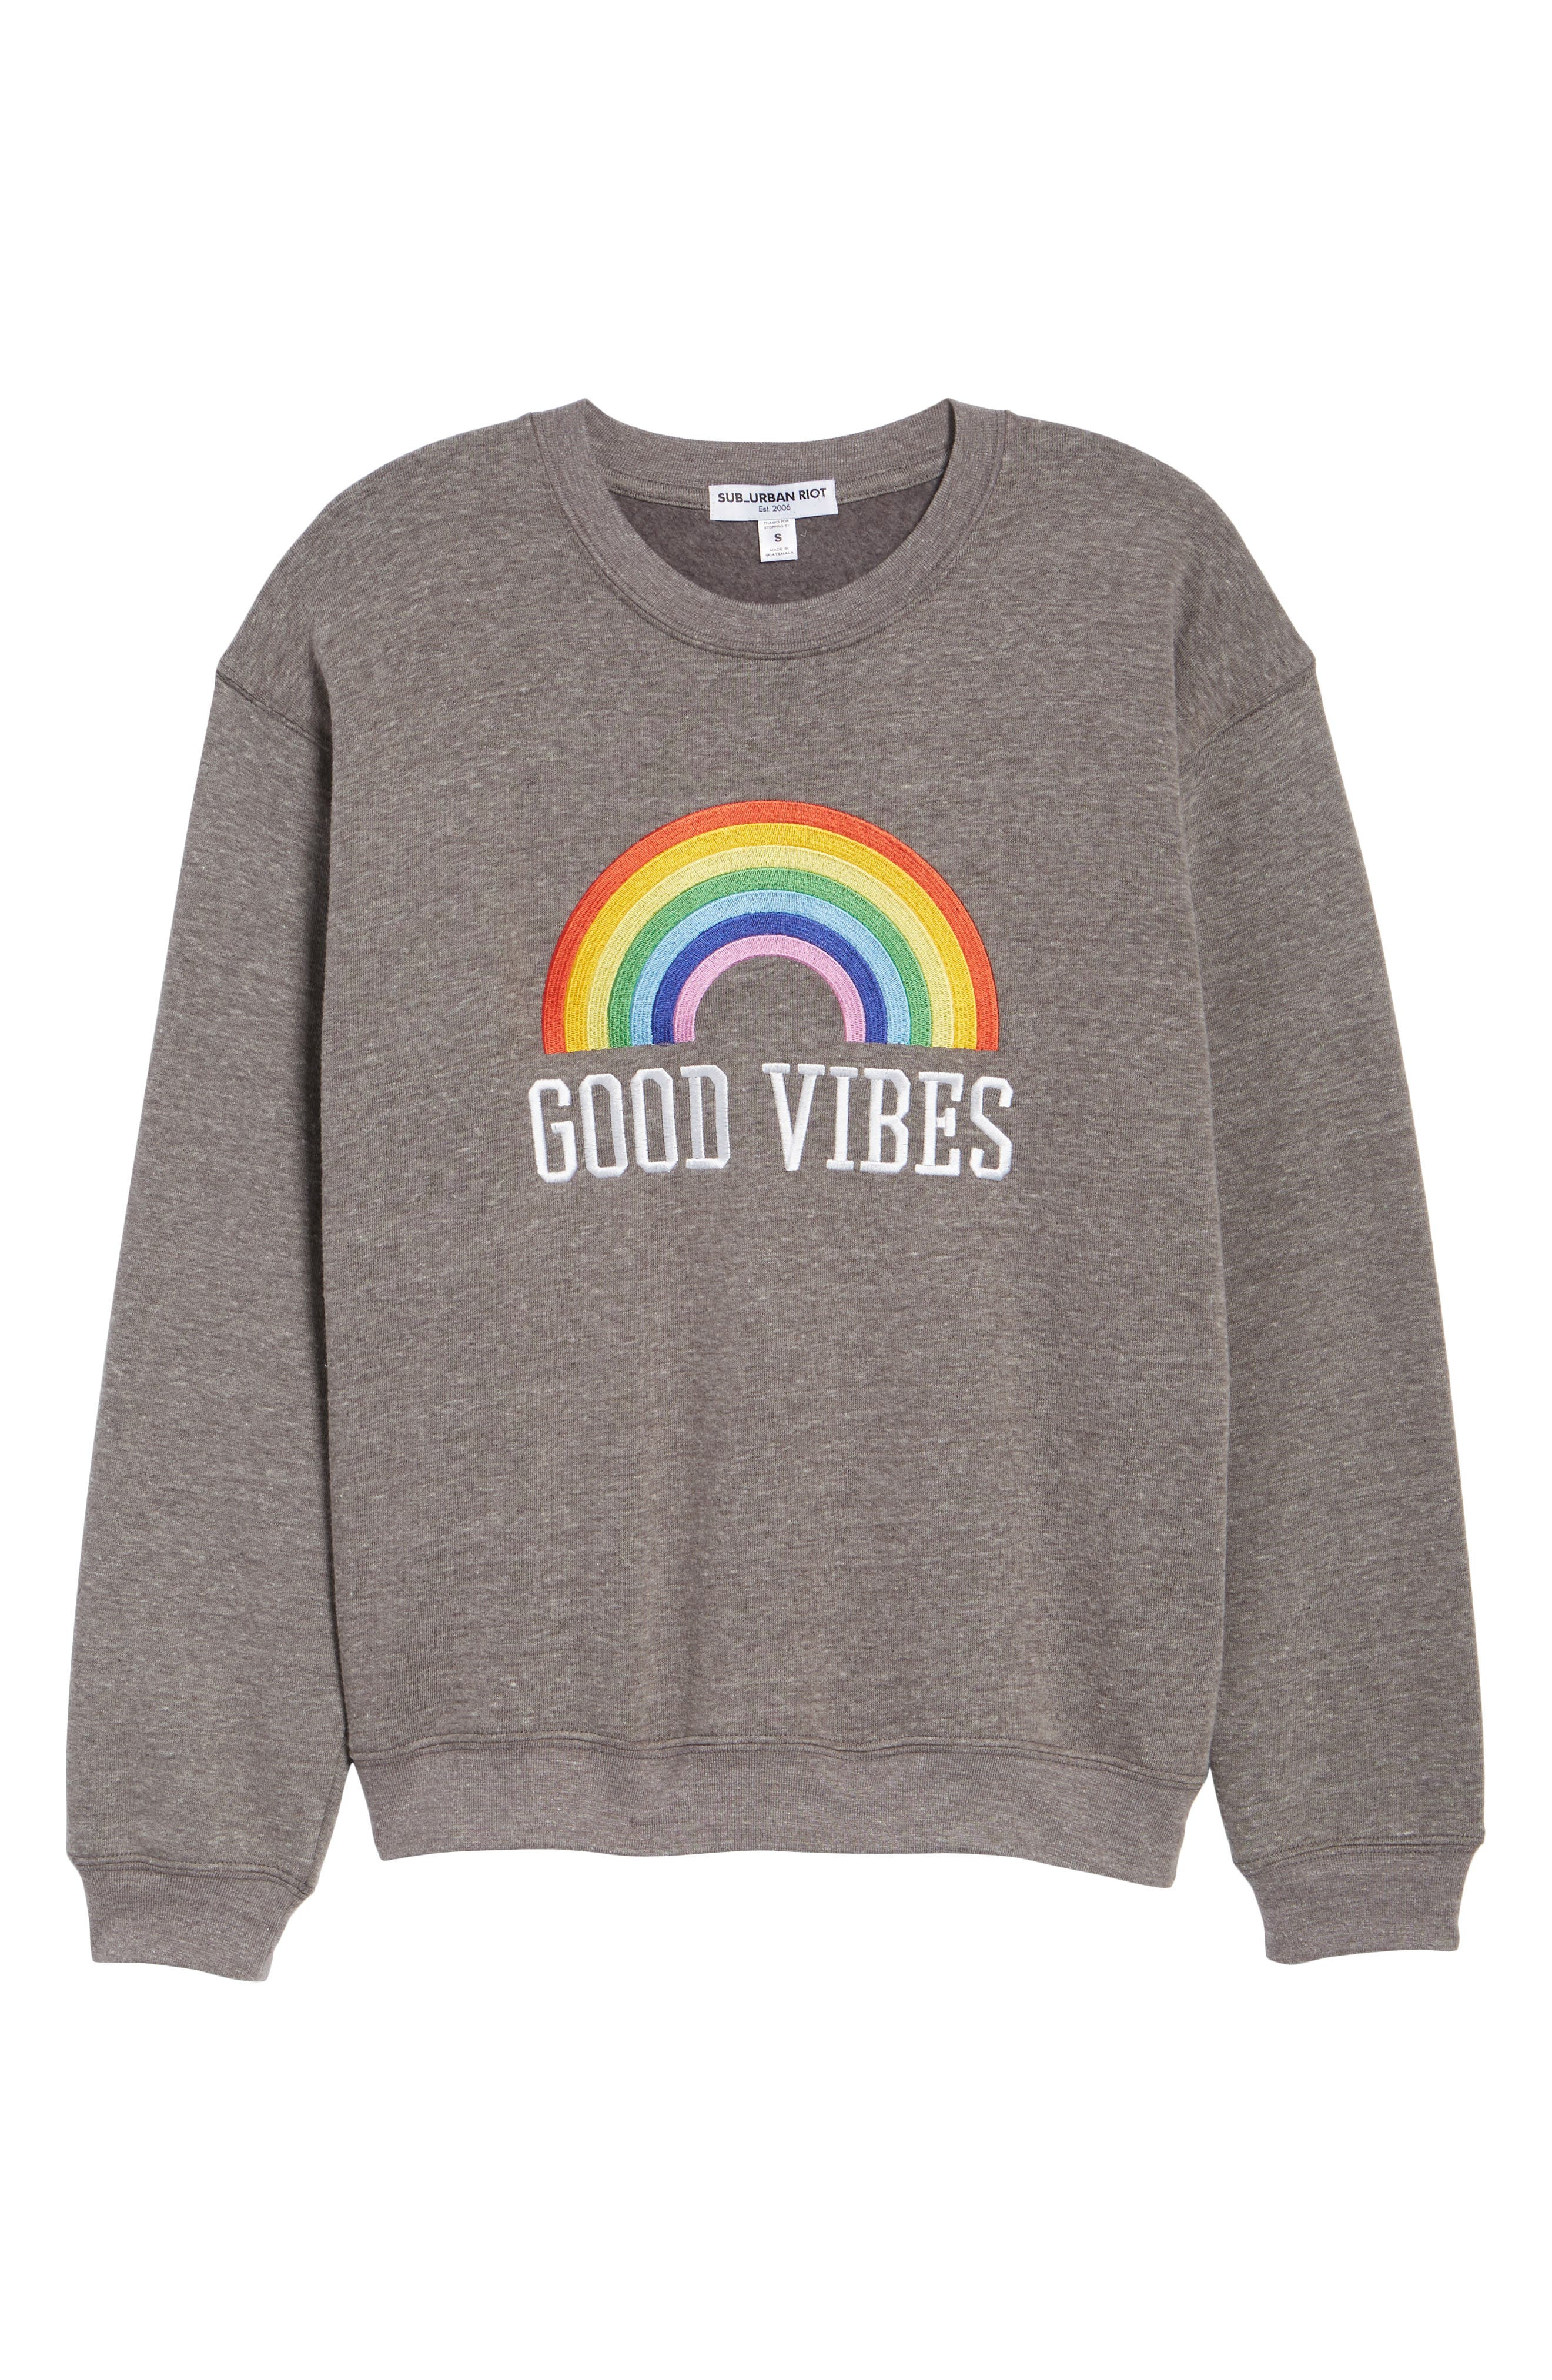 SUB_URBAN RIOT,                             Good Vibes Rainbow Sweatshirt,                             Alternate thumbnail 6, color,                             050